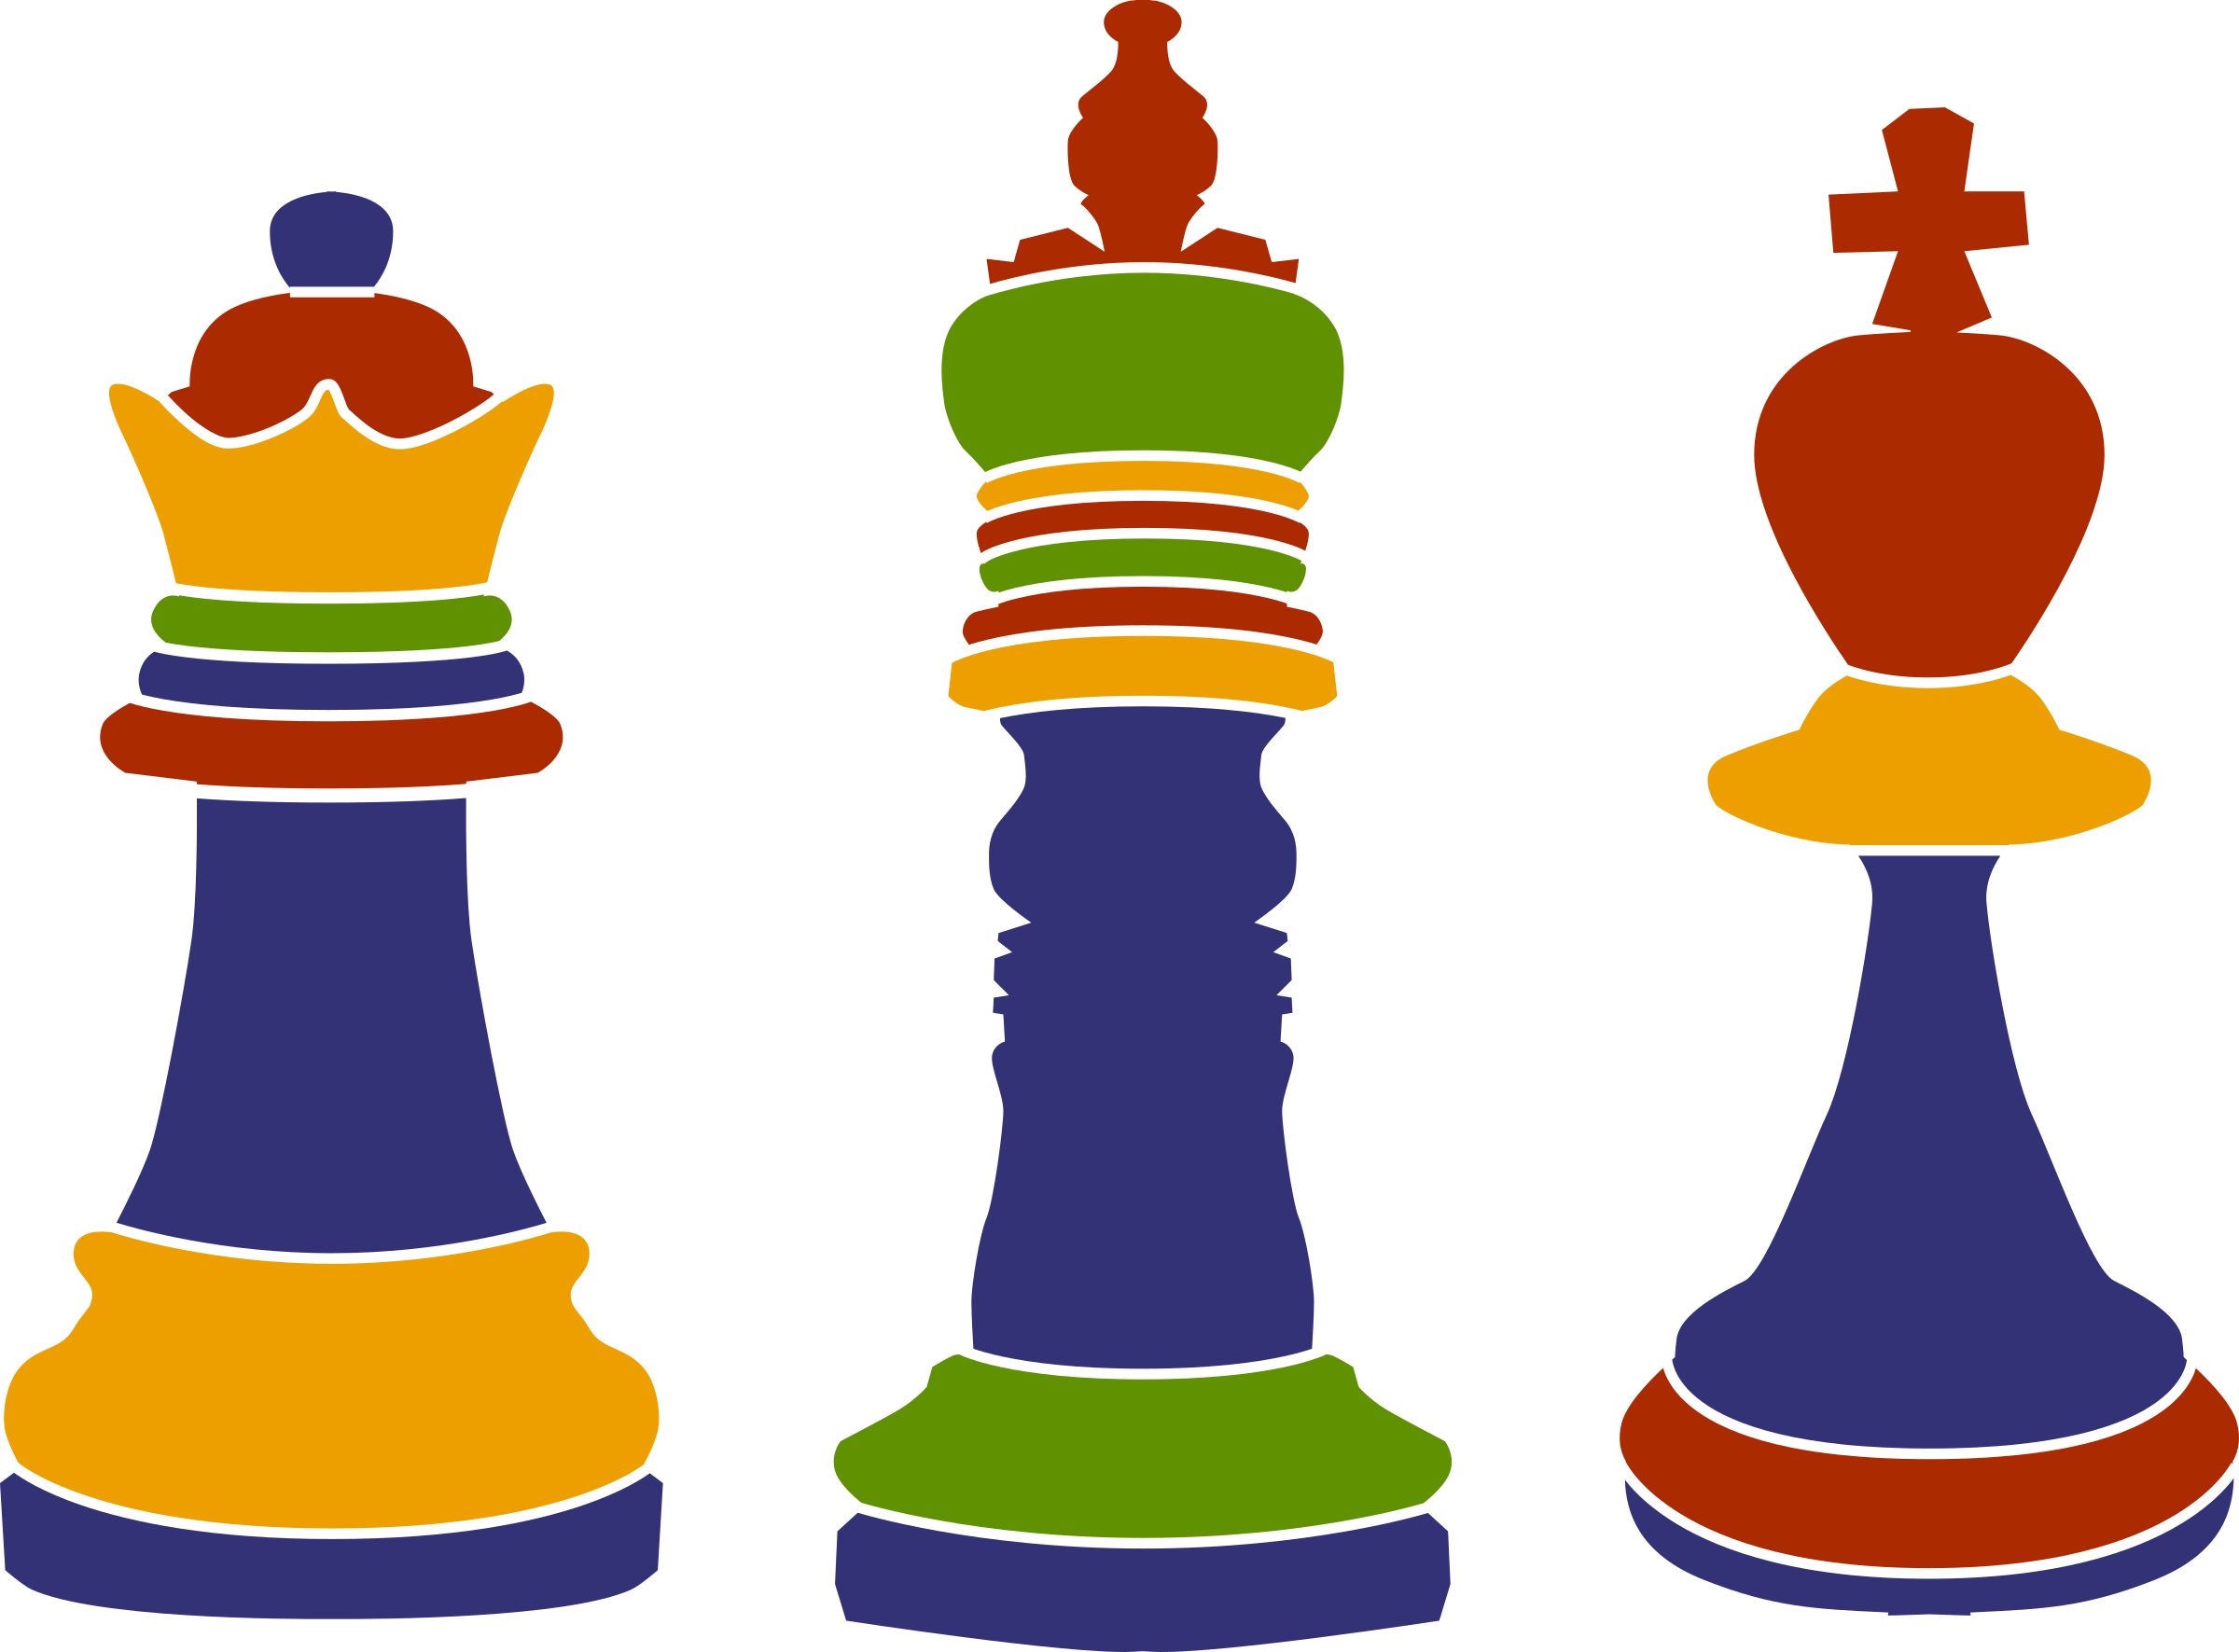 Games clipart board game. Chess piece king clip